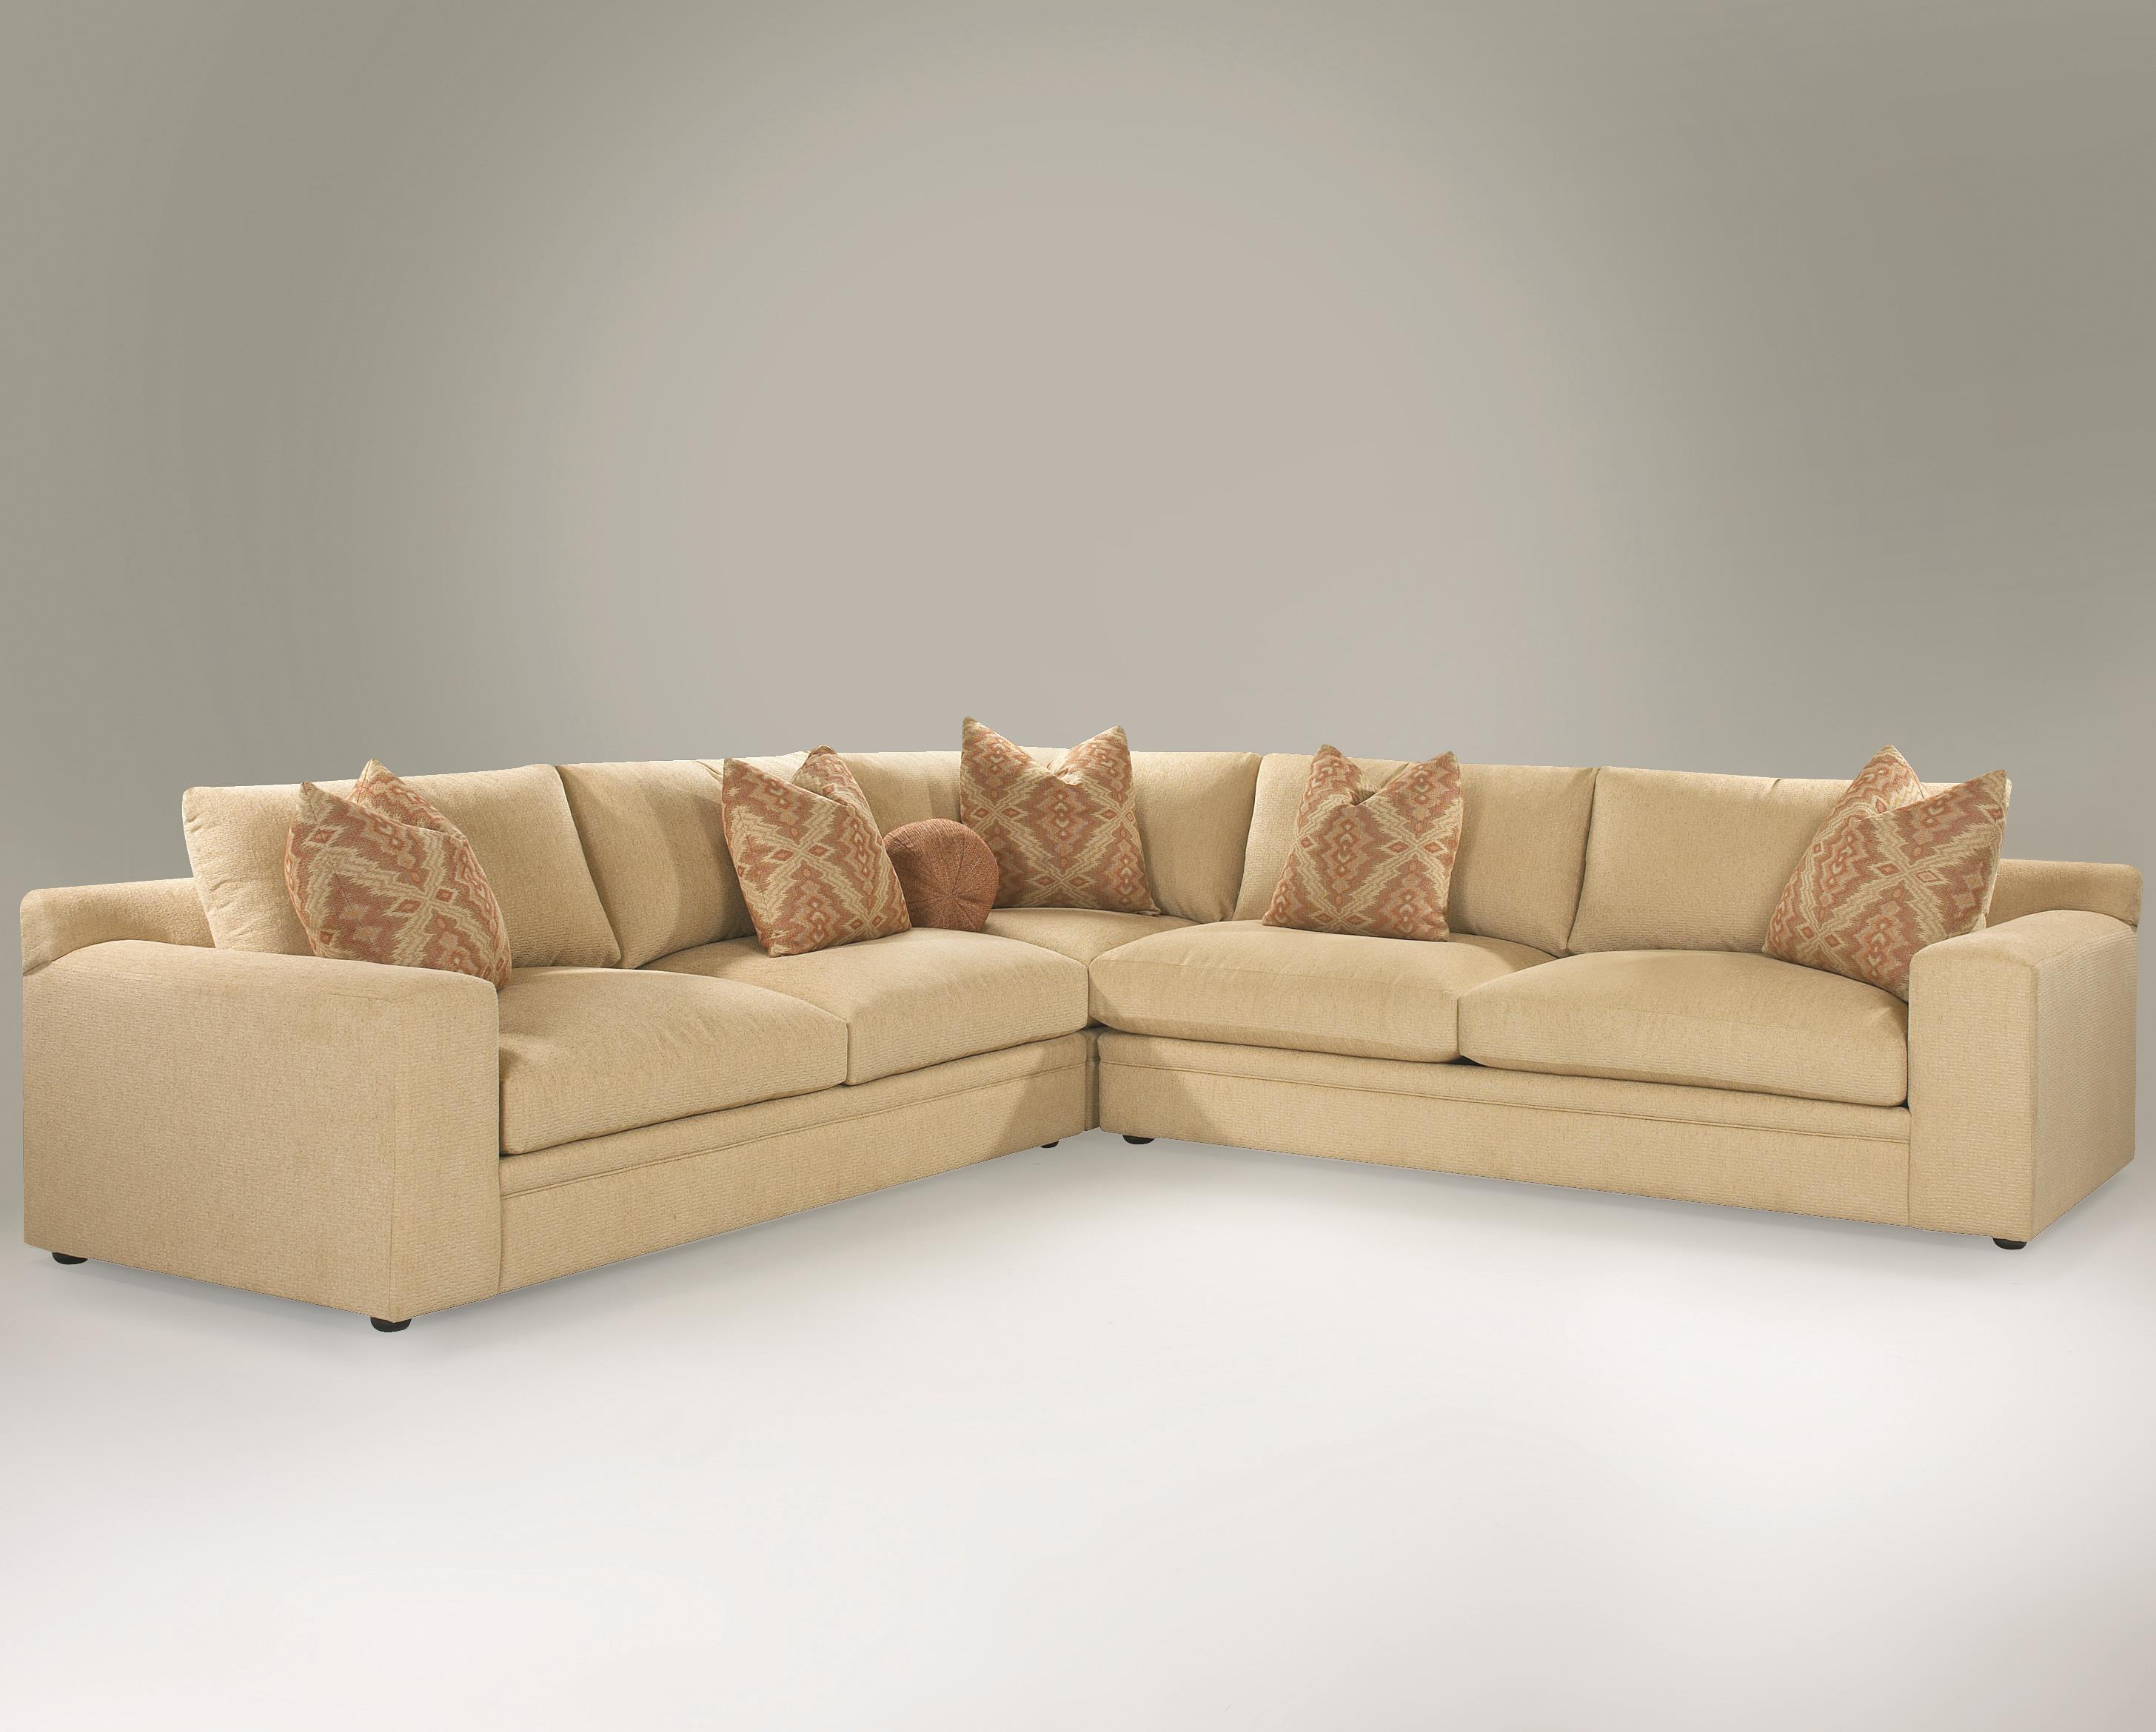 Casual 3 Piece Sectional Sofa with Track Arms and Loose Back